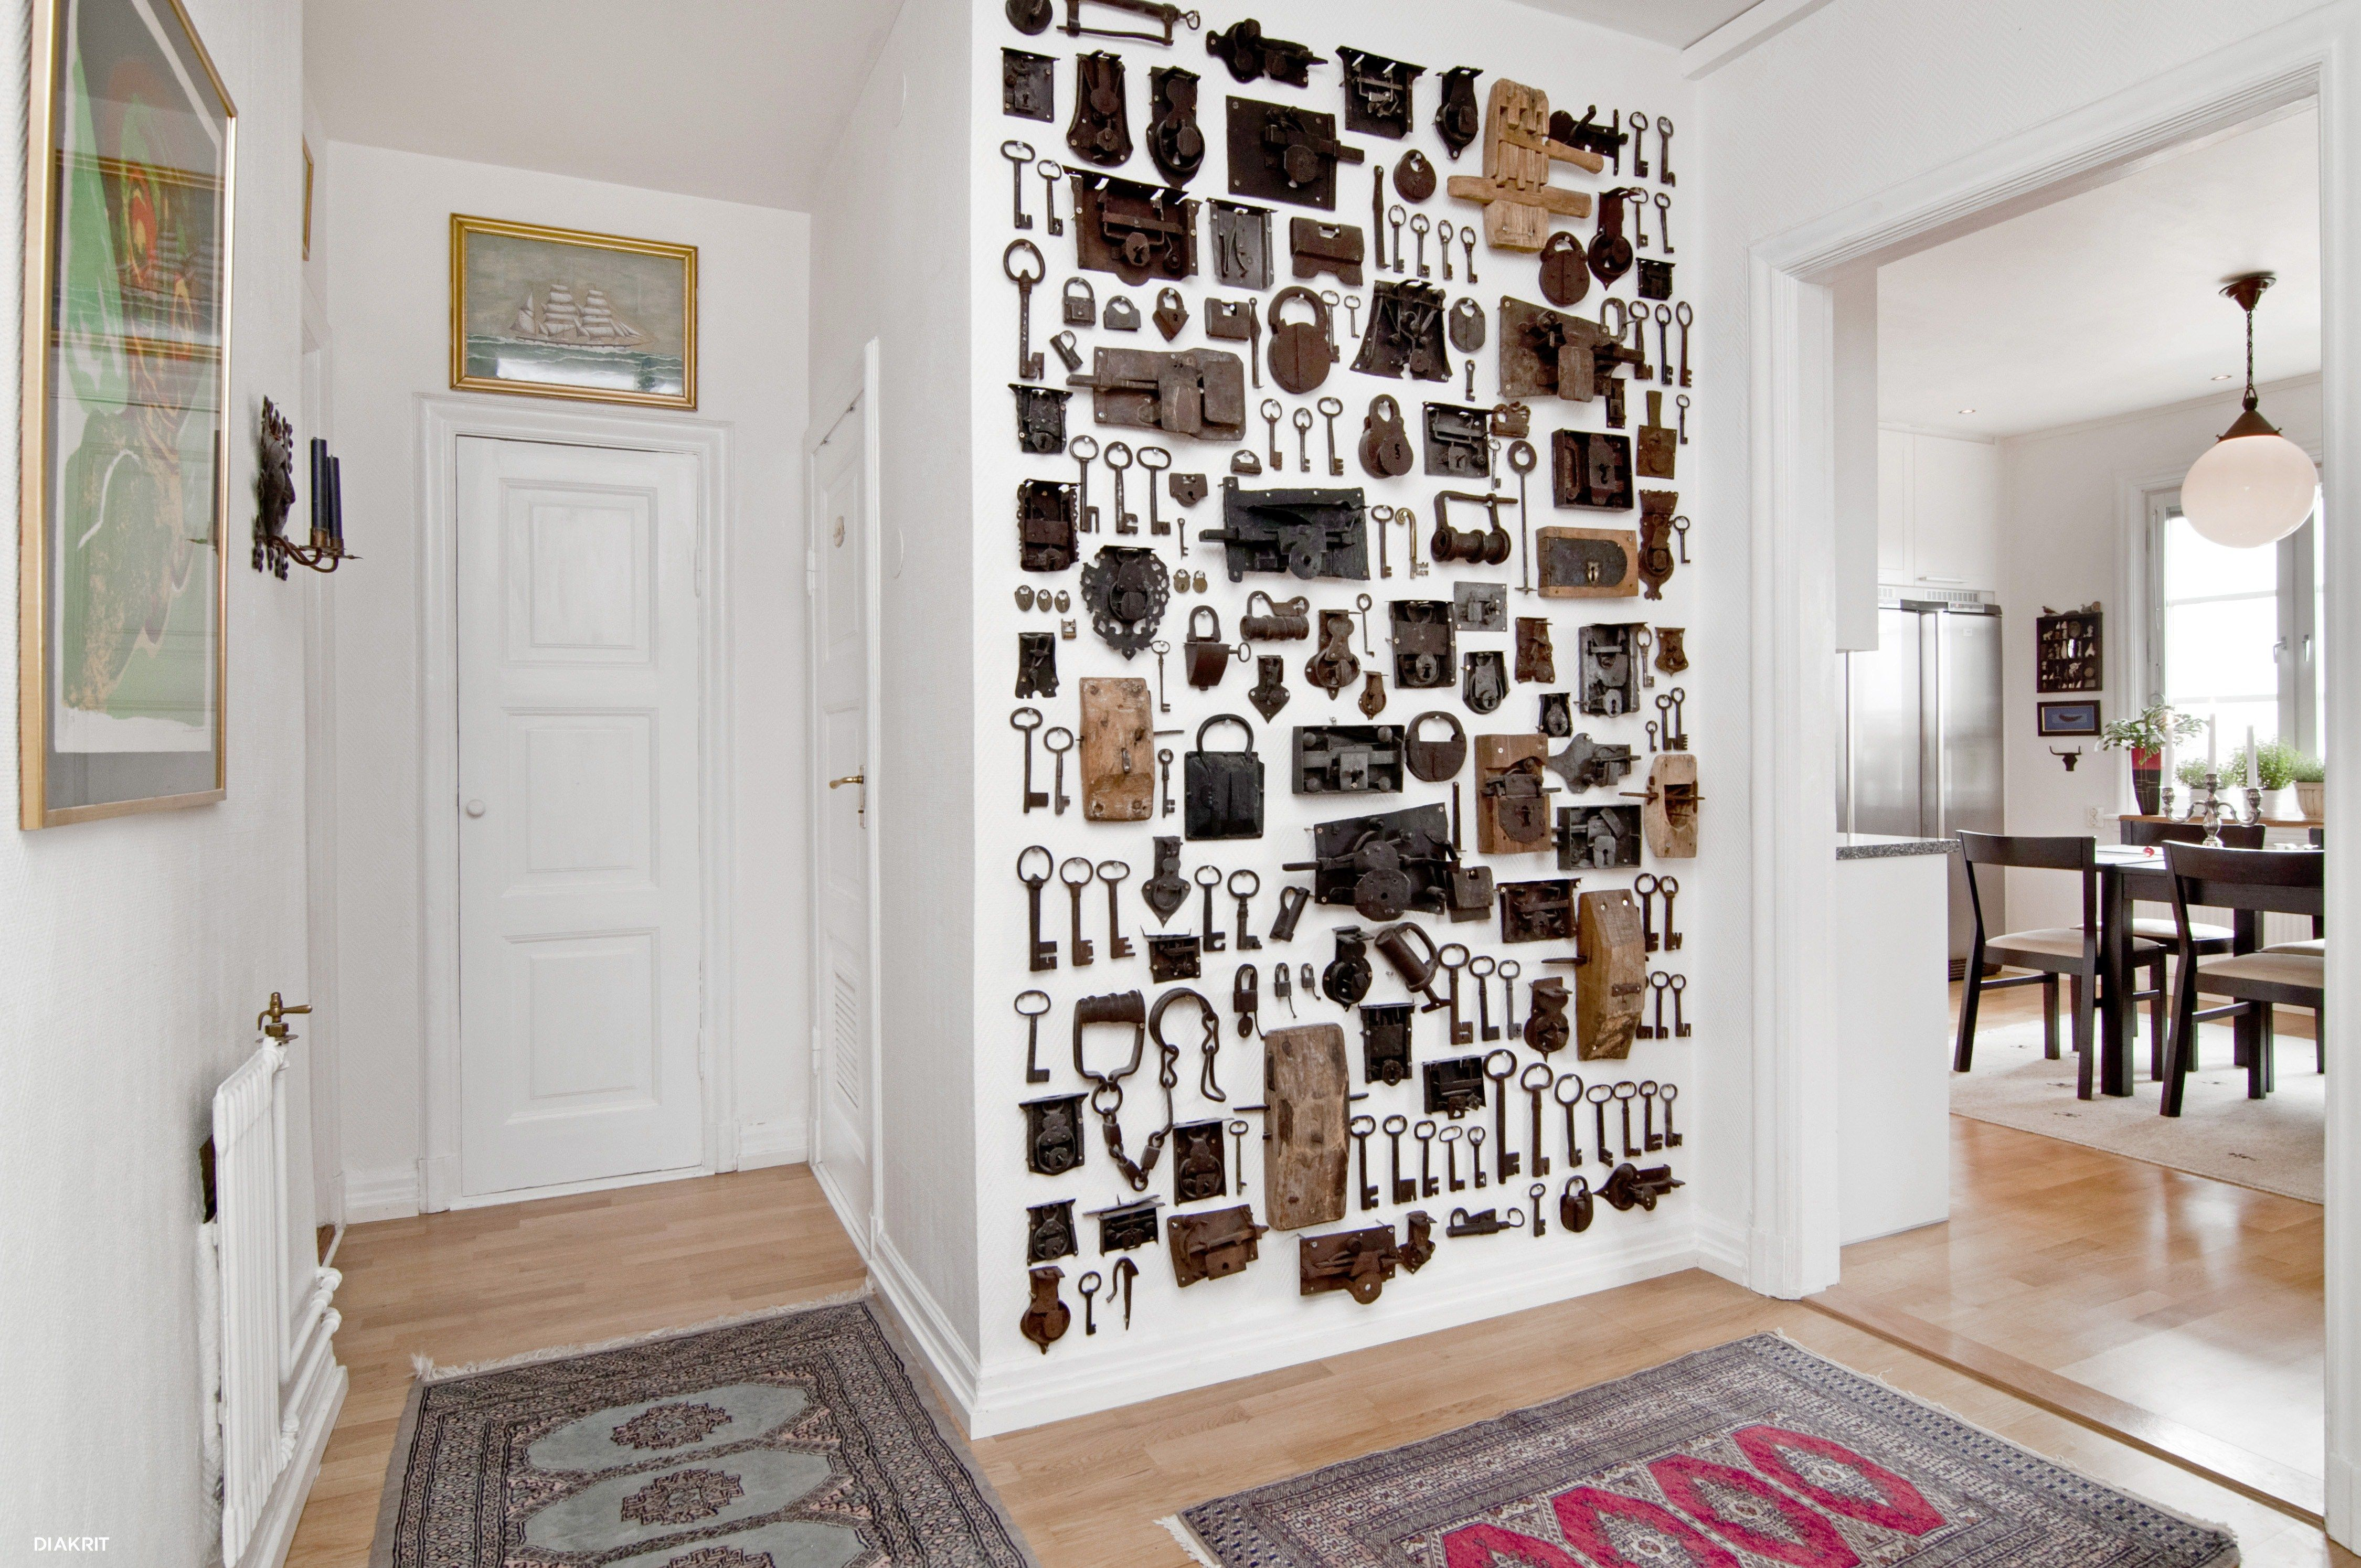 Apartment Foyer Key : Foyer wall lock key collection entries mudrooms